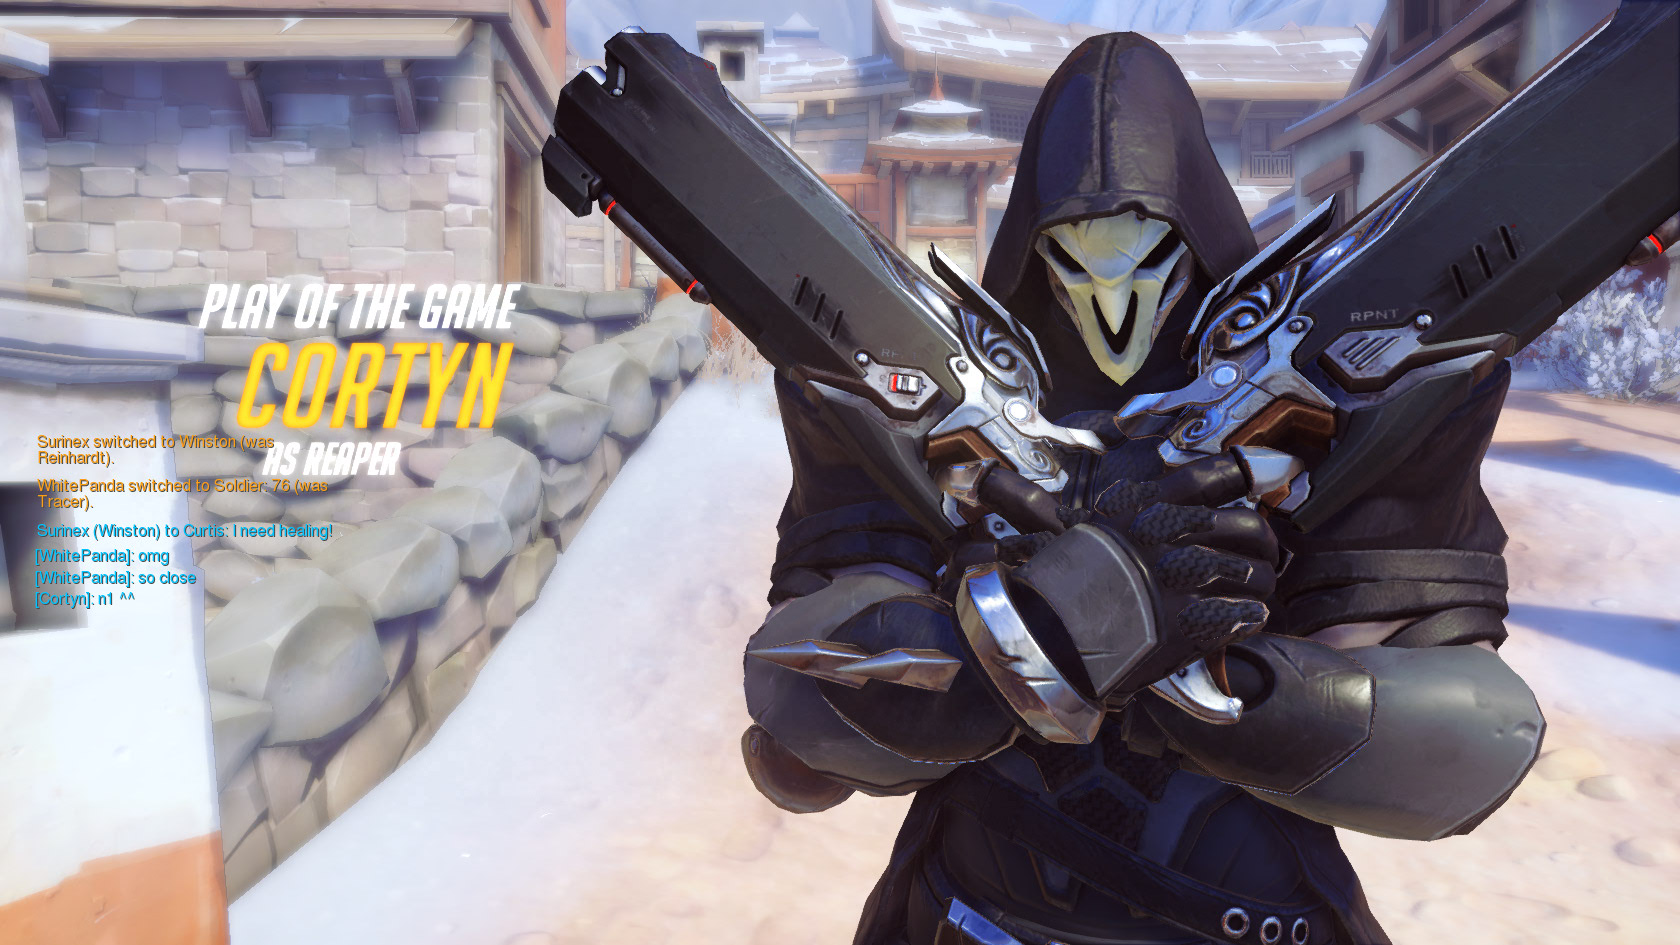 Overwatch Patch-Notes verraten: Reaper hat nun massive Eigenheilung